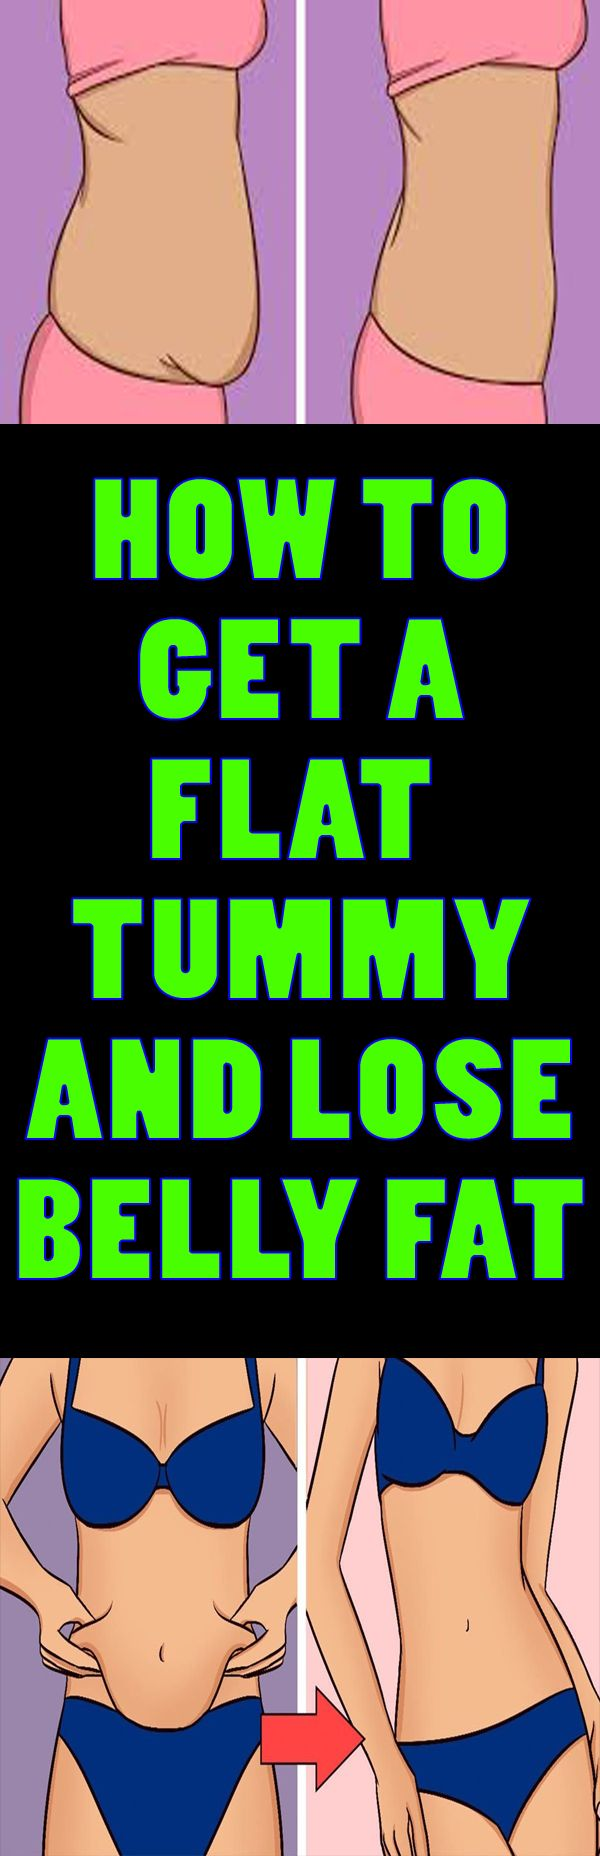 Things to do if you're trying to lose belly fat. How to los belly fat and flatten your tummy !